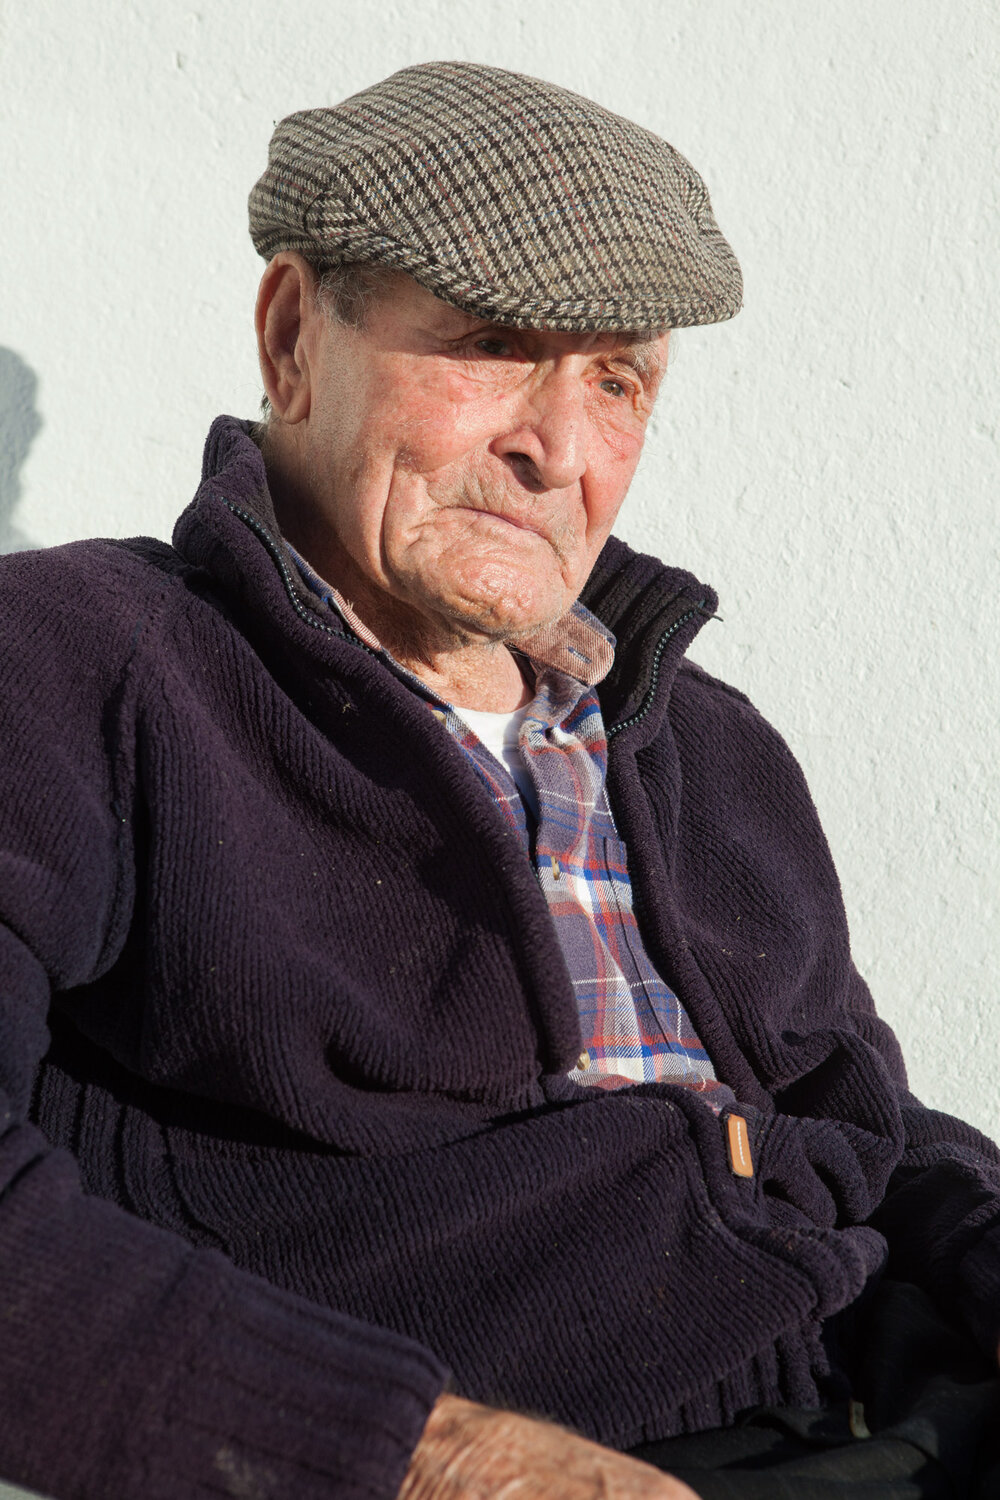 Paddy Faherty, Inishturk's oldest resident will turn 100 in March 2017.